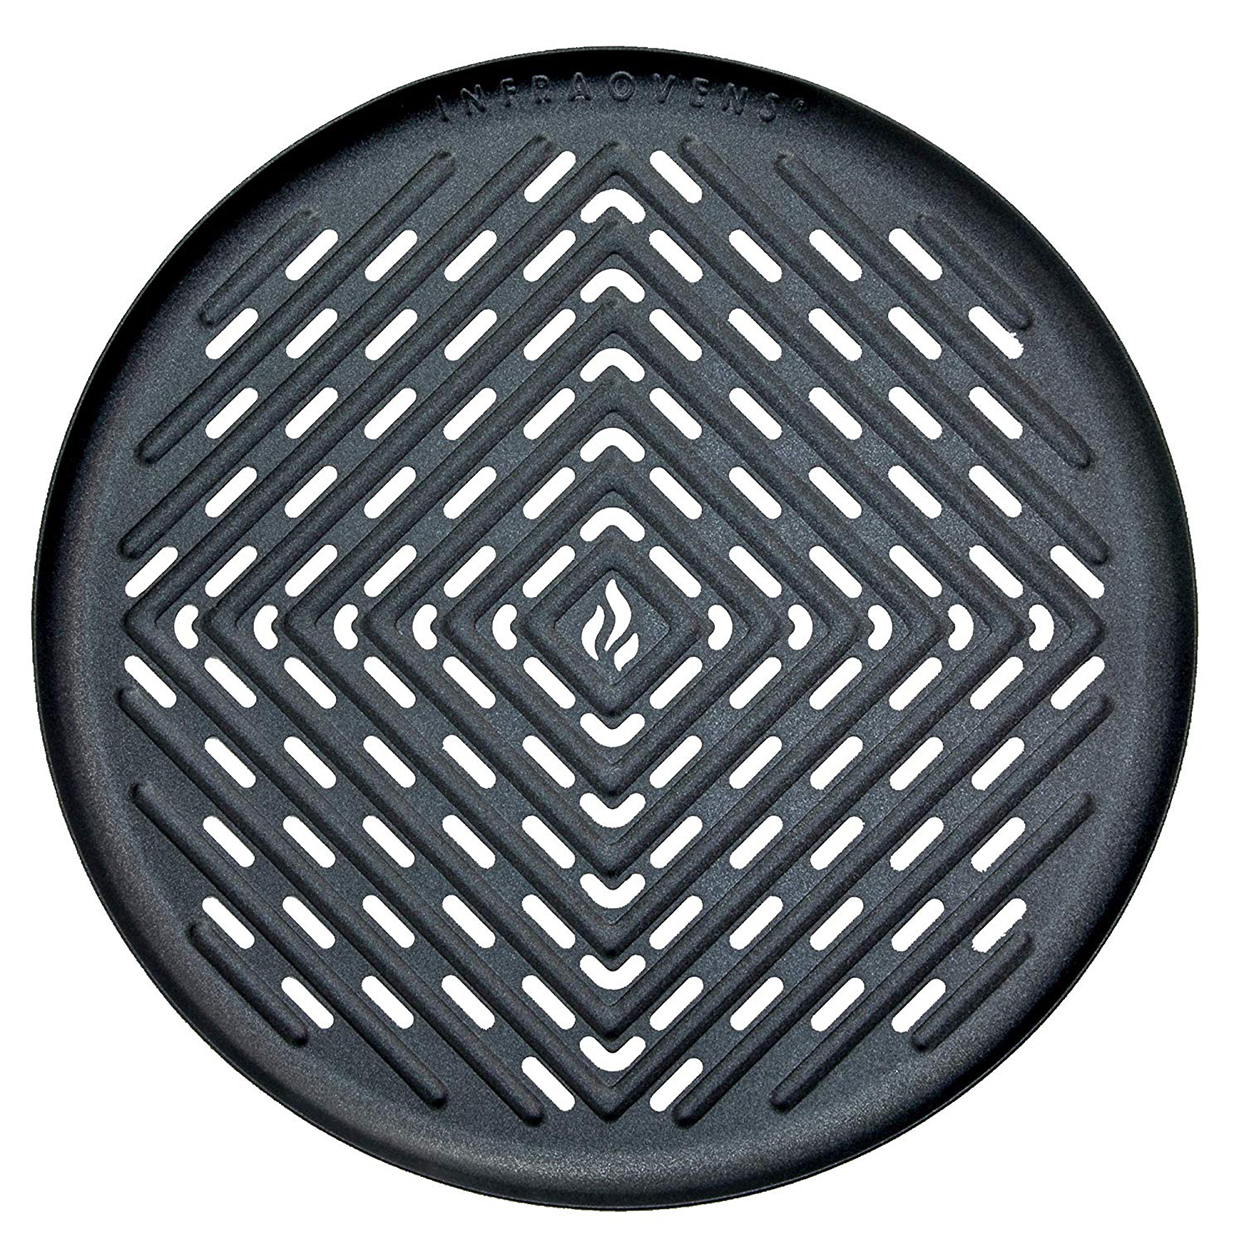 Black air fryer grill pan on white background